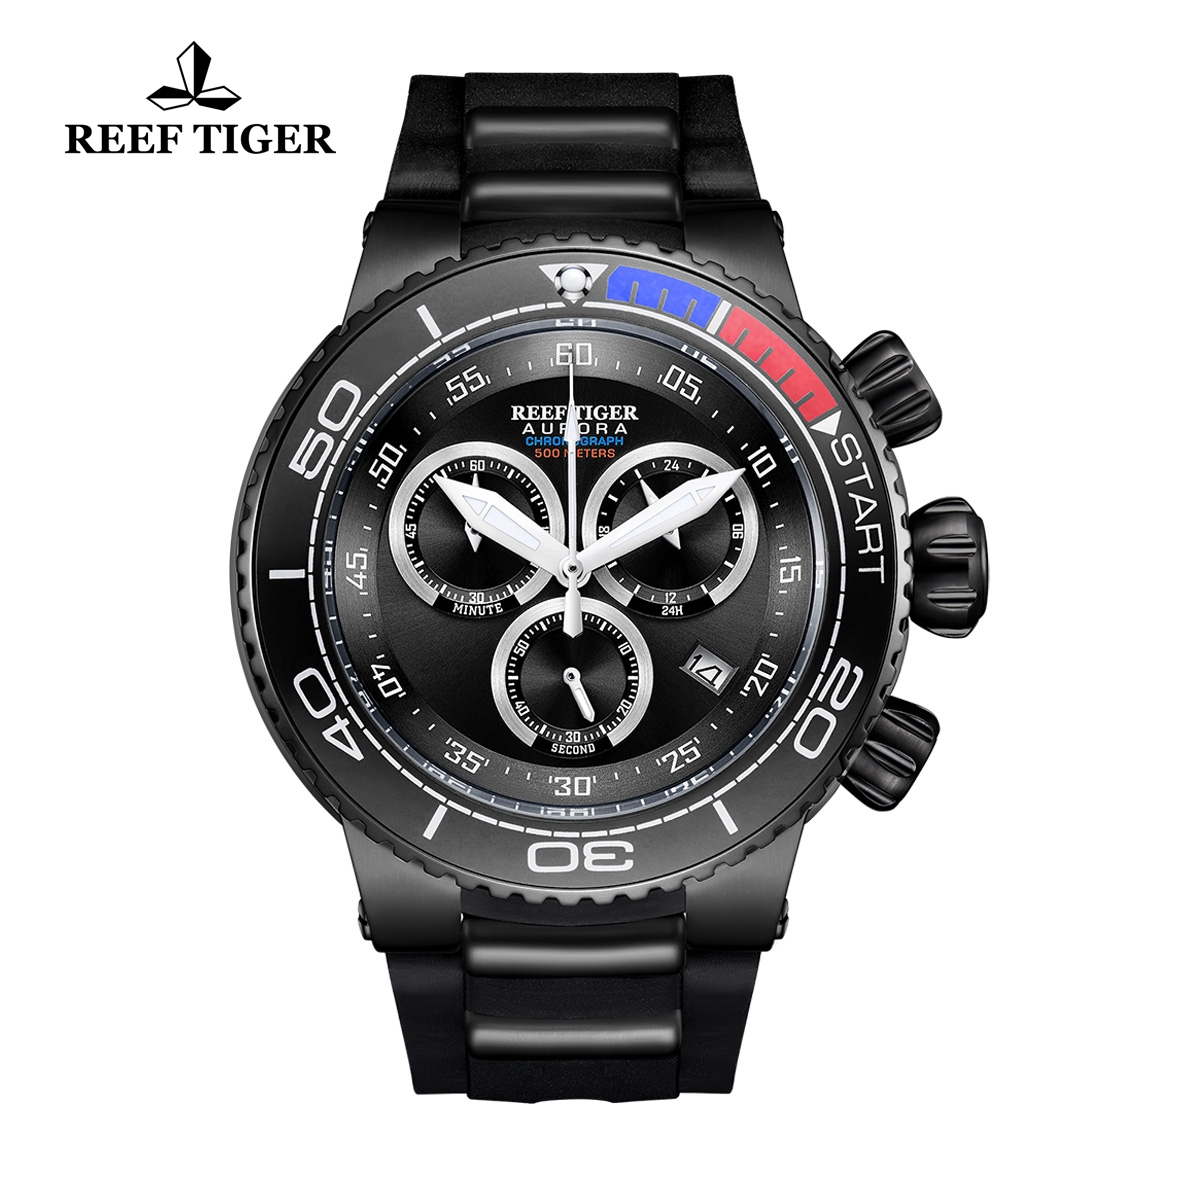 Reef Tiger Aurora Grand Ocean Fashion PVD Watch Rubber Strap Black Dial Chronograph Quartz Watch RGA3168-BBB